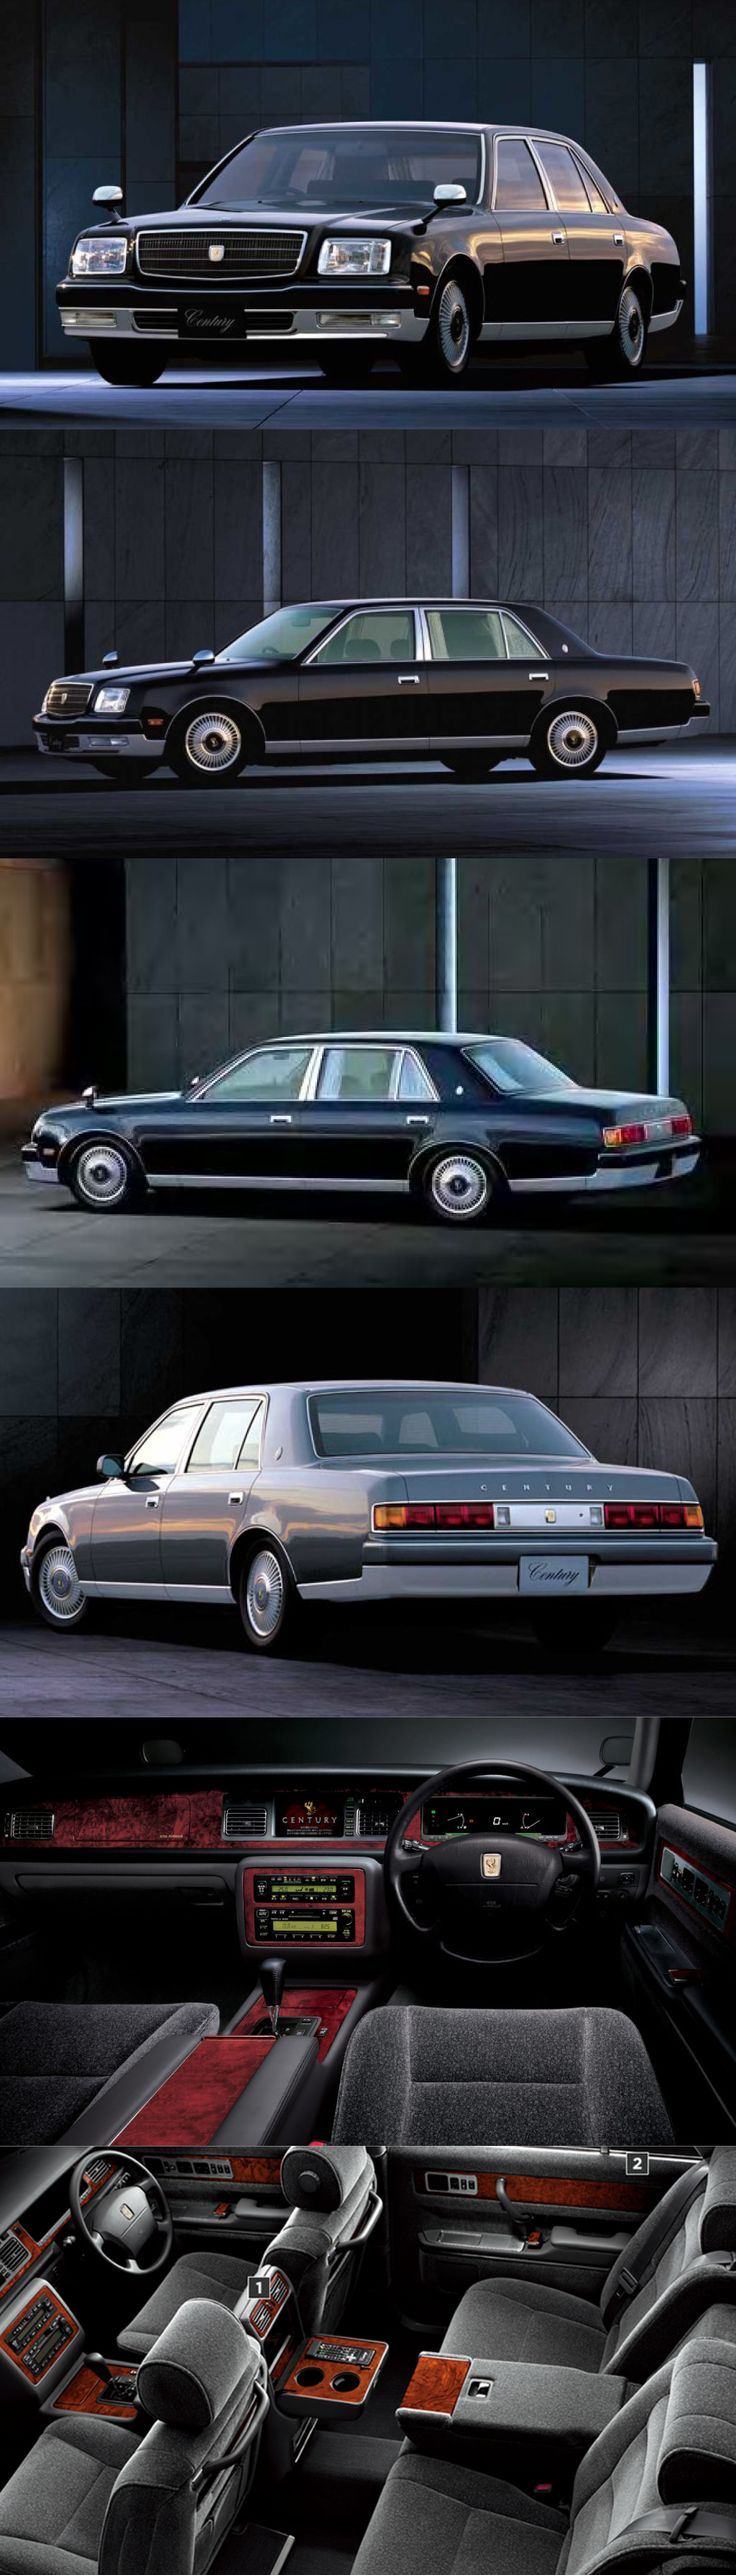 1997 Toyota Century / V12 5.0l 276hp / G50 / black chrome/ Japan / minimalism